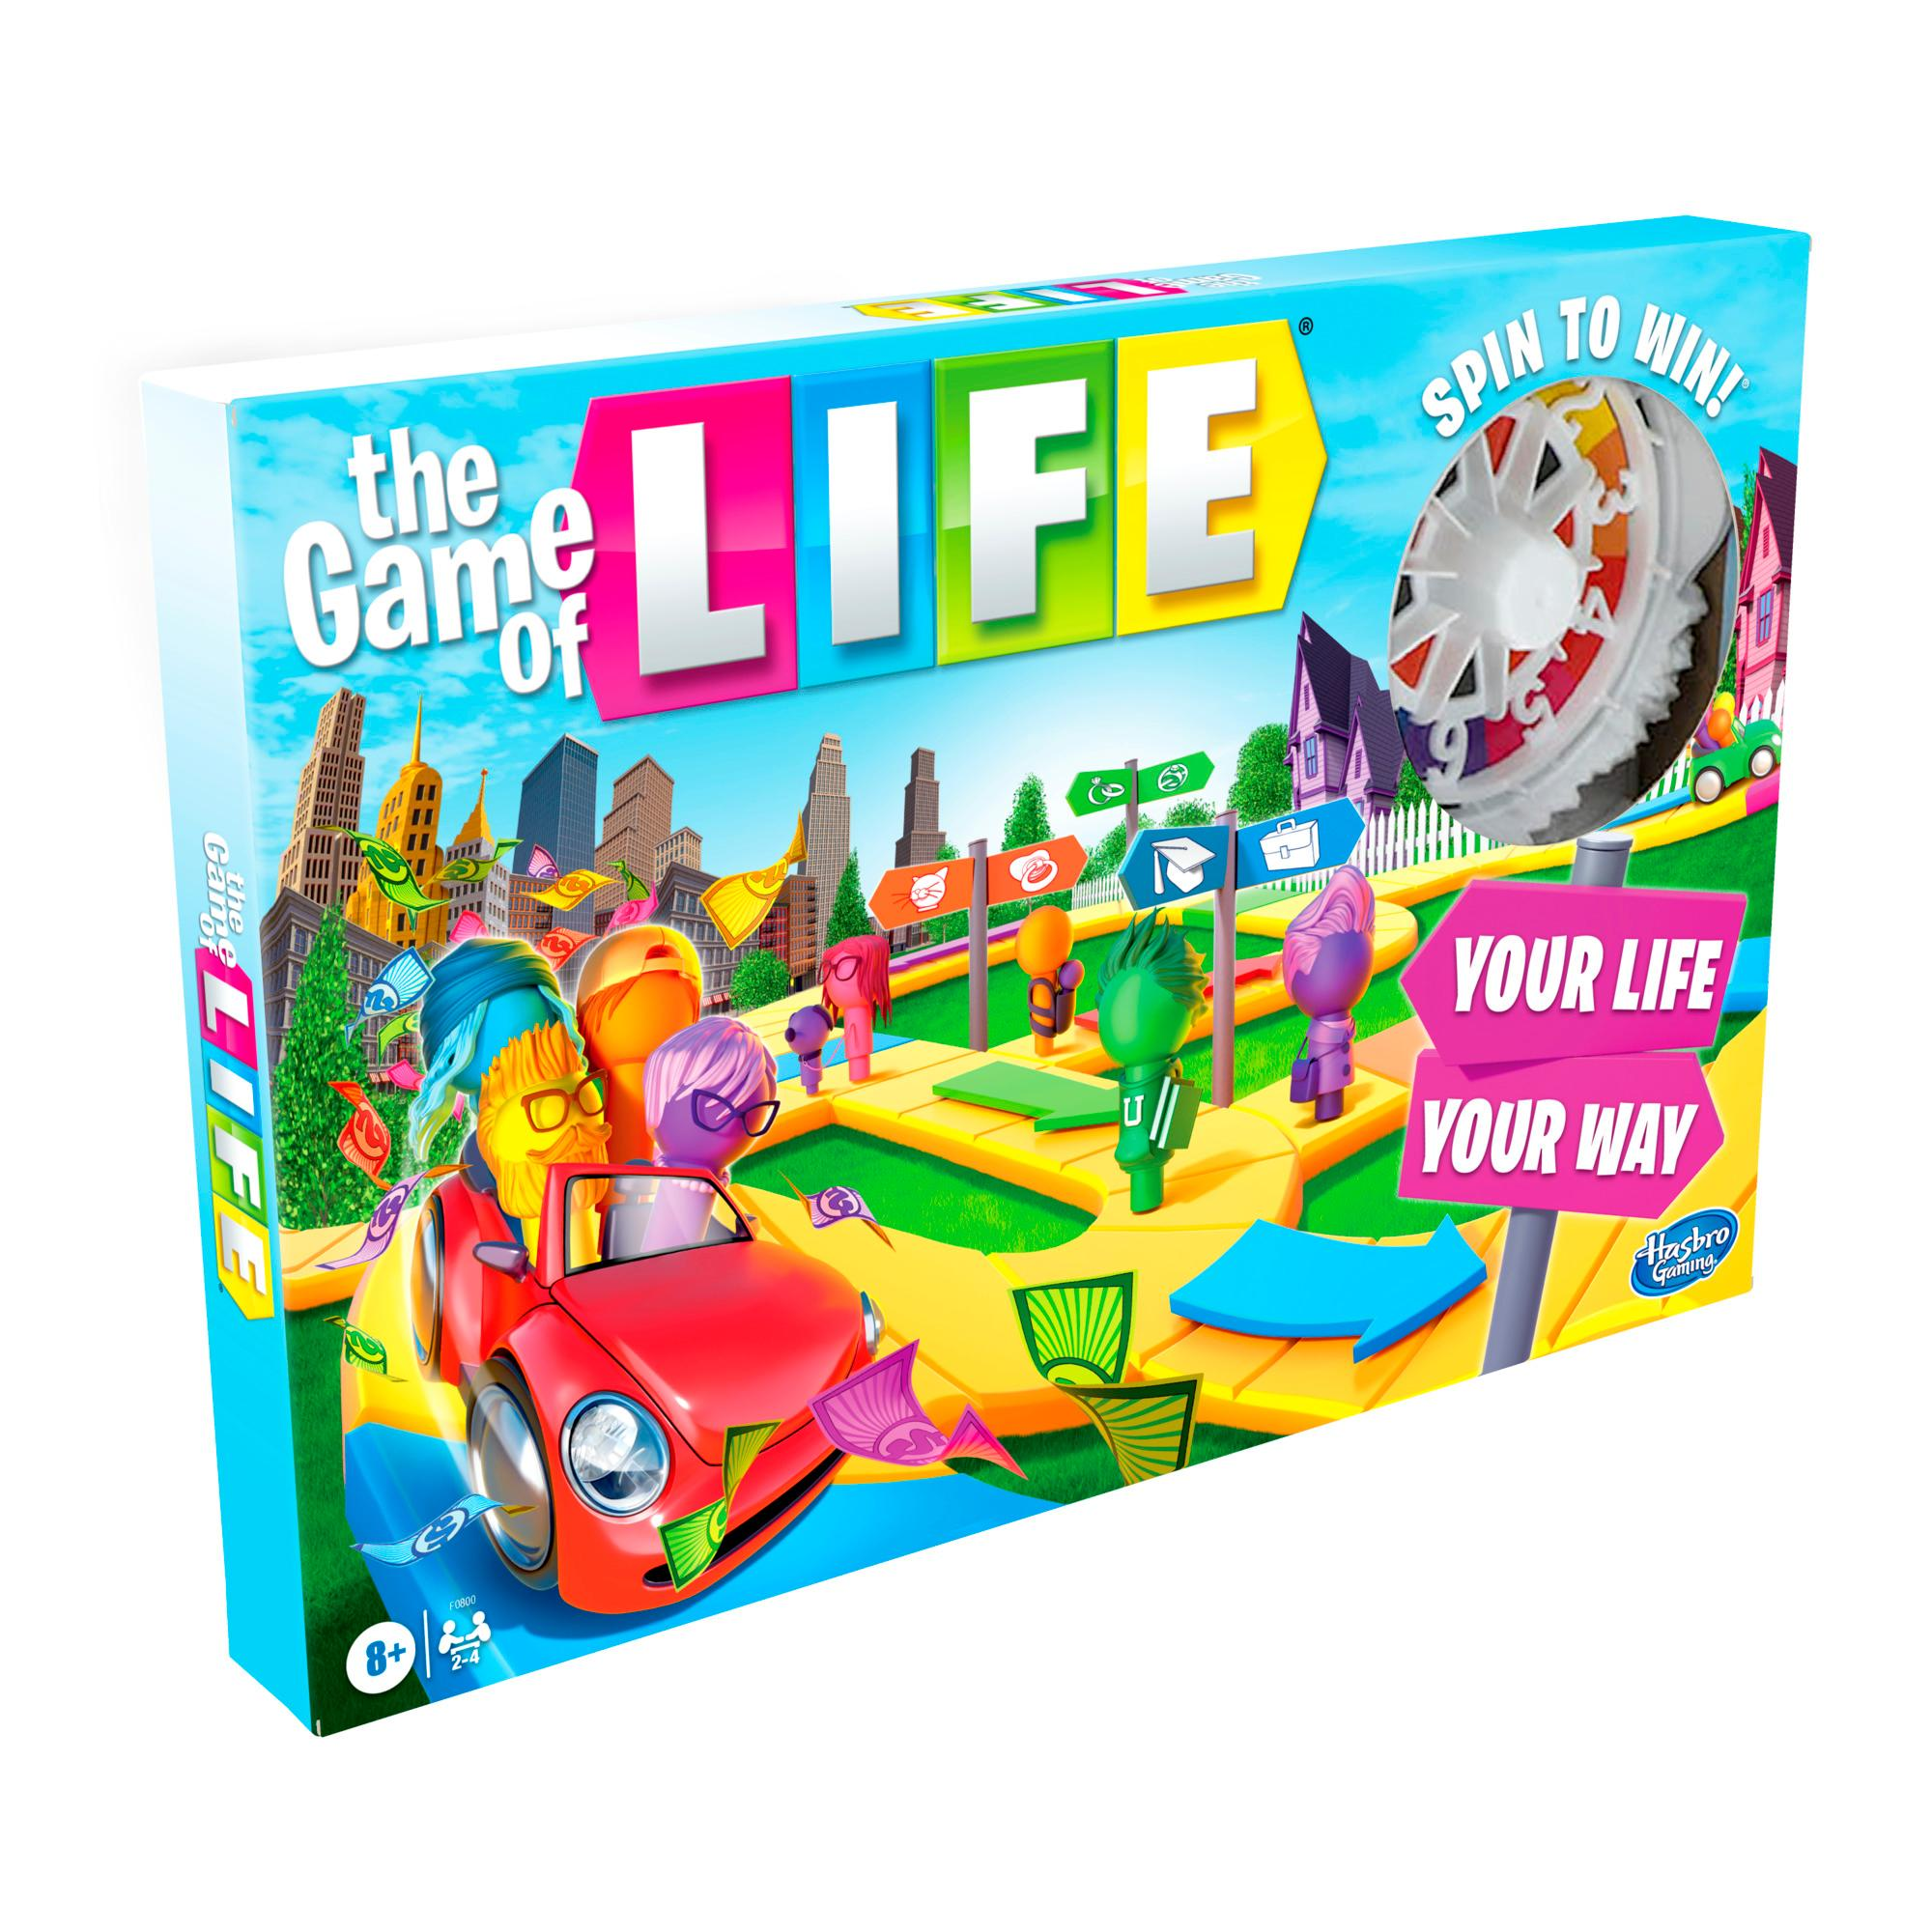 The Game of Life Game, Family Board Game for 2 to 4 Players, for Kids Ages 8 and Up, Includes Colorful Pegs